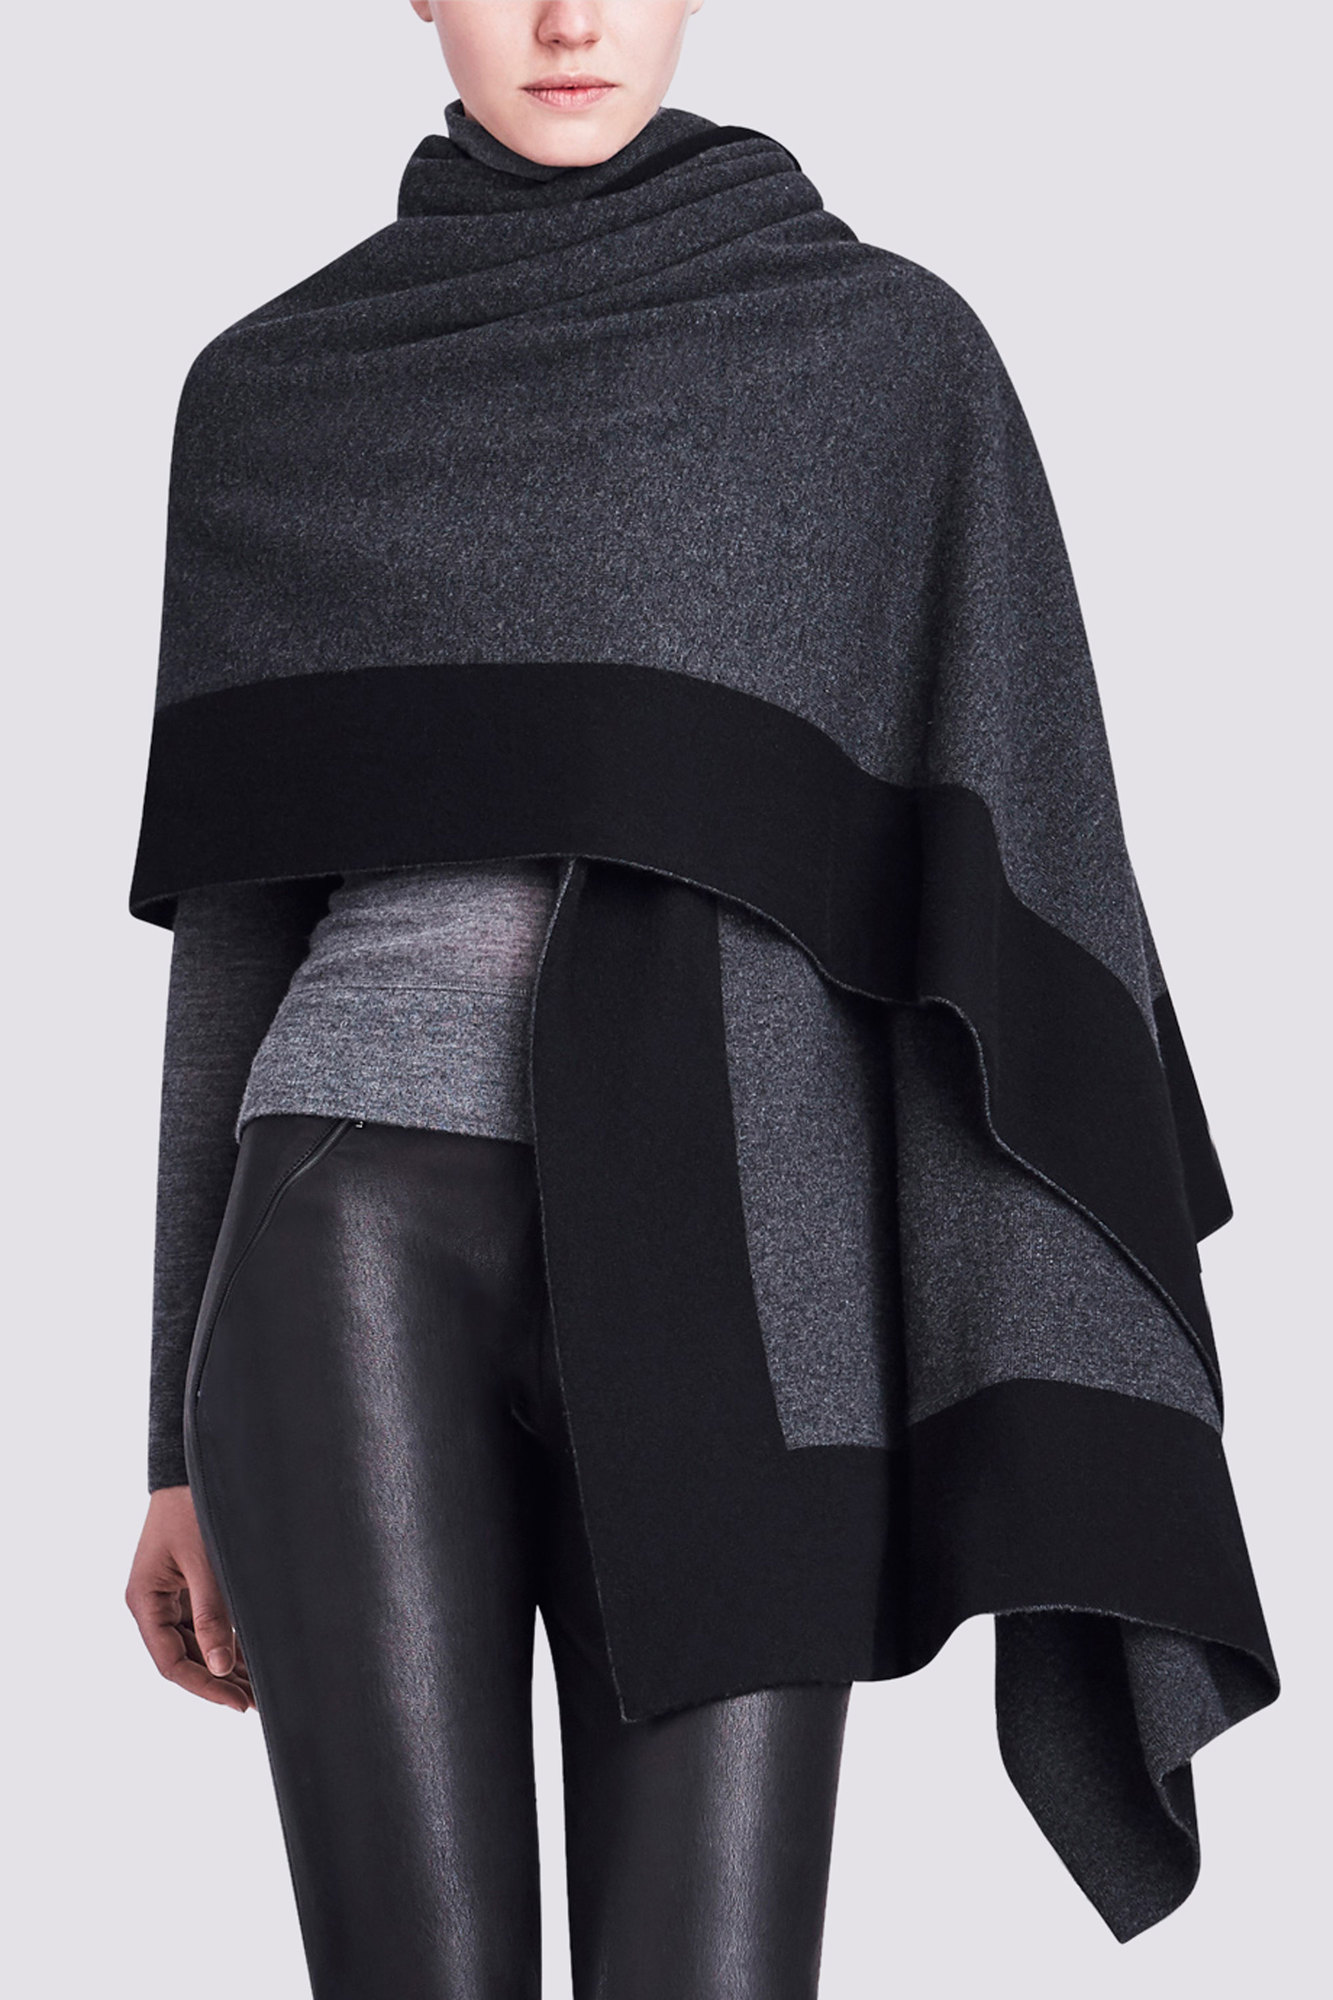 $100 Off $400 Sitewide AND 40% Off Select Styles @ Elie Tahari